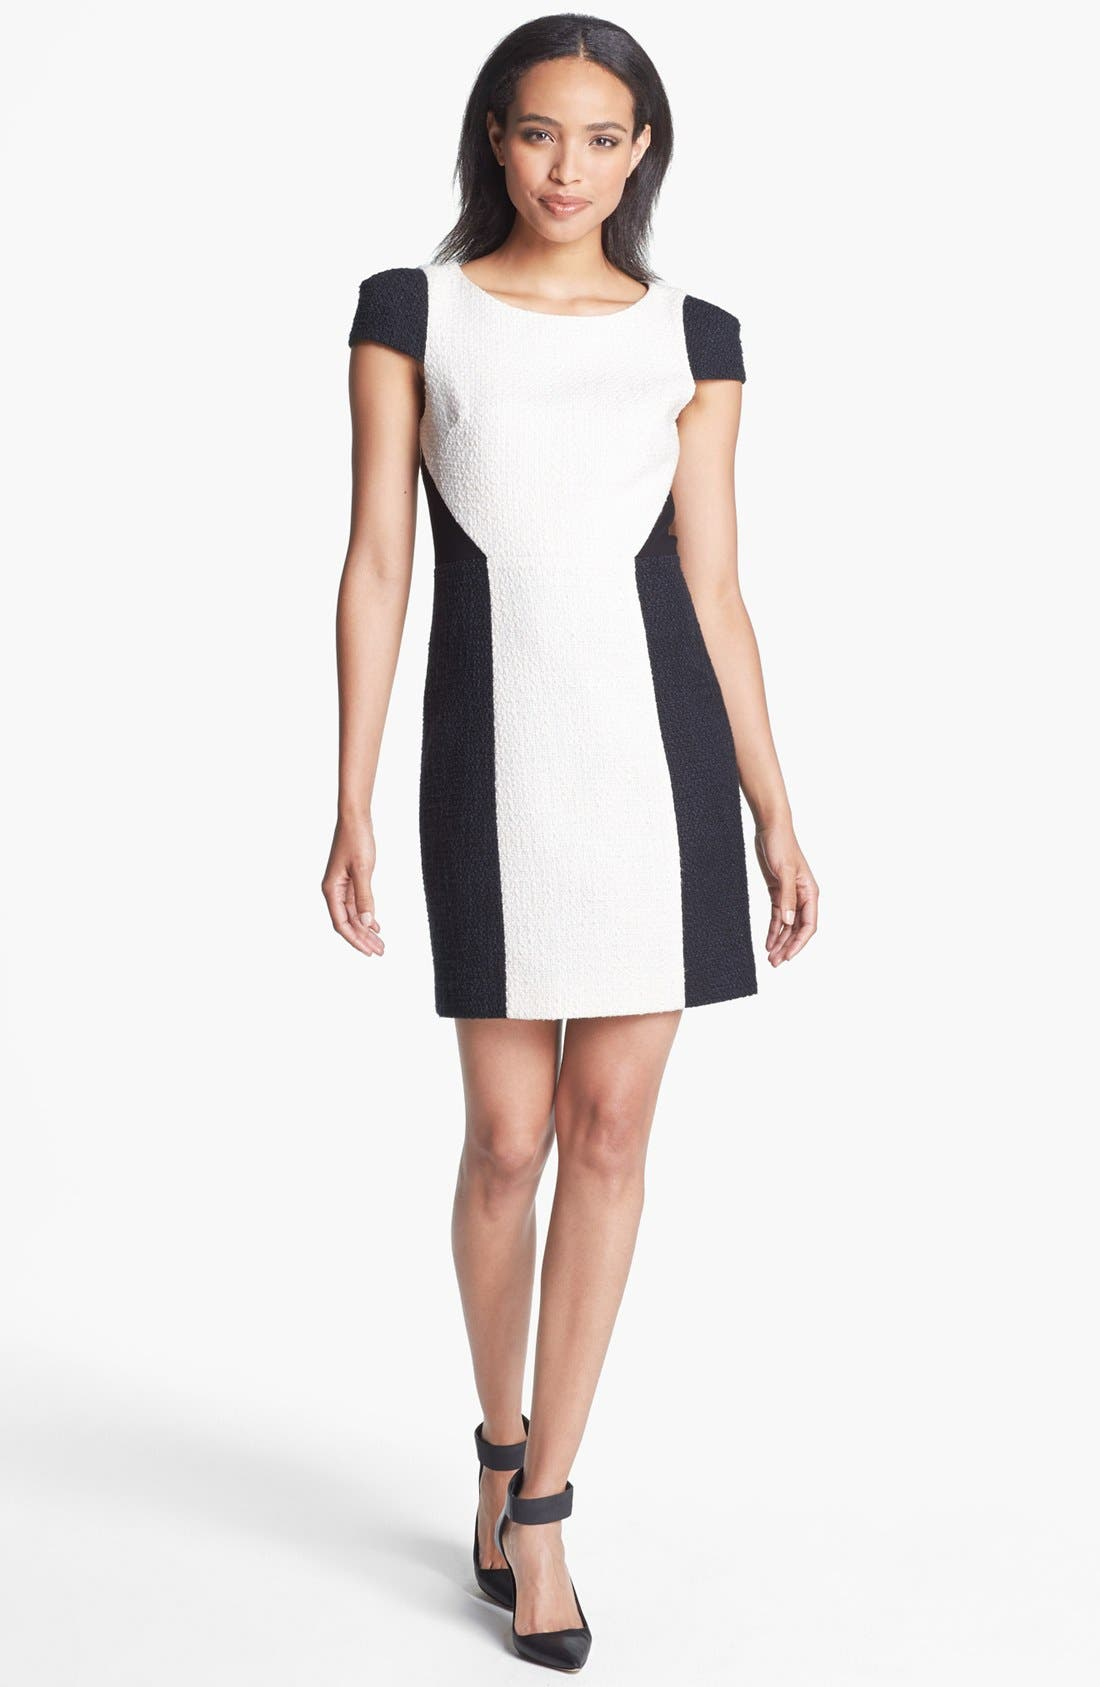 Alternate Image 1 Selected - 4.collective Colorblock Tweed Sheath Dress